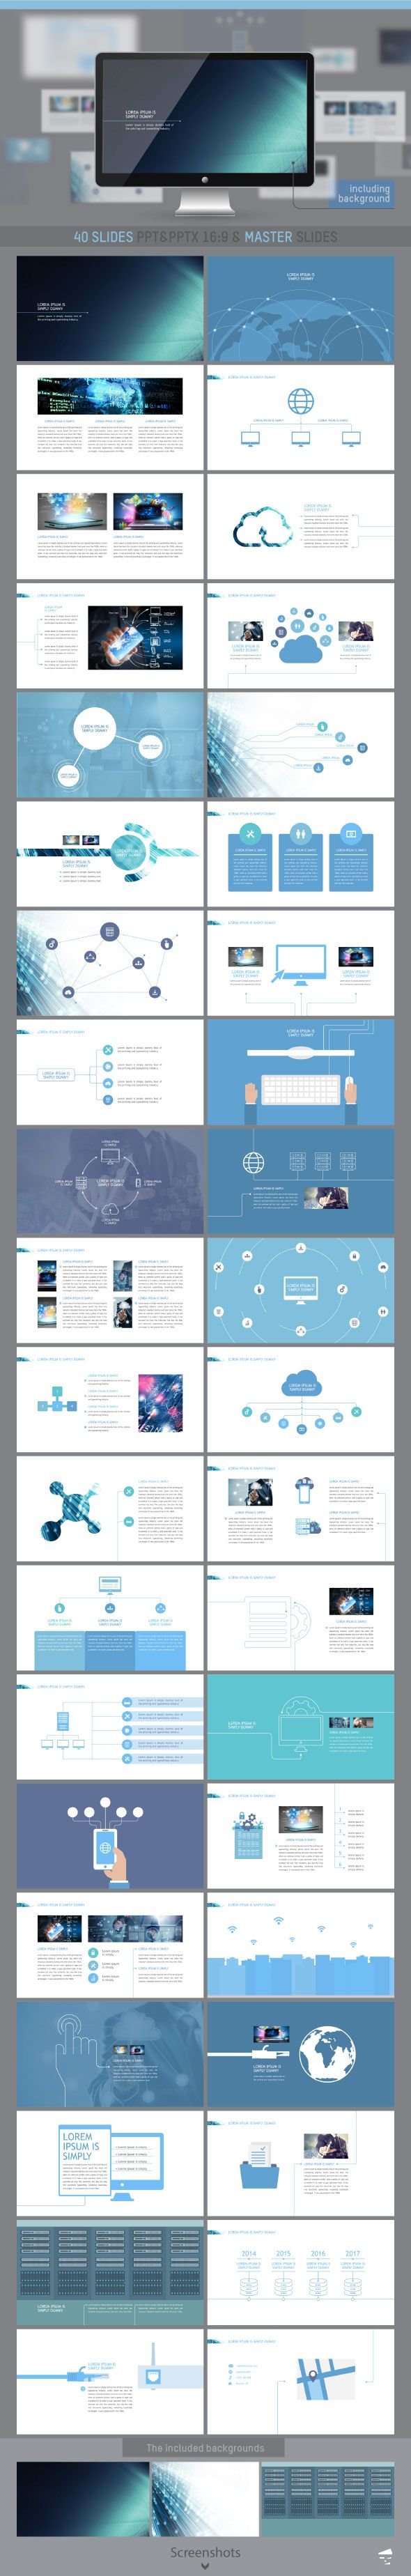 Professional presentation for Information Technology  #template #presentation • Download ➝ https://graphicriver.net/item/professional-presentation-for-information-technology/18539096?ref=pxcr